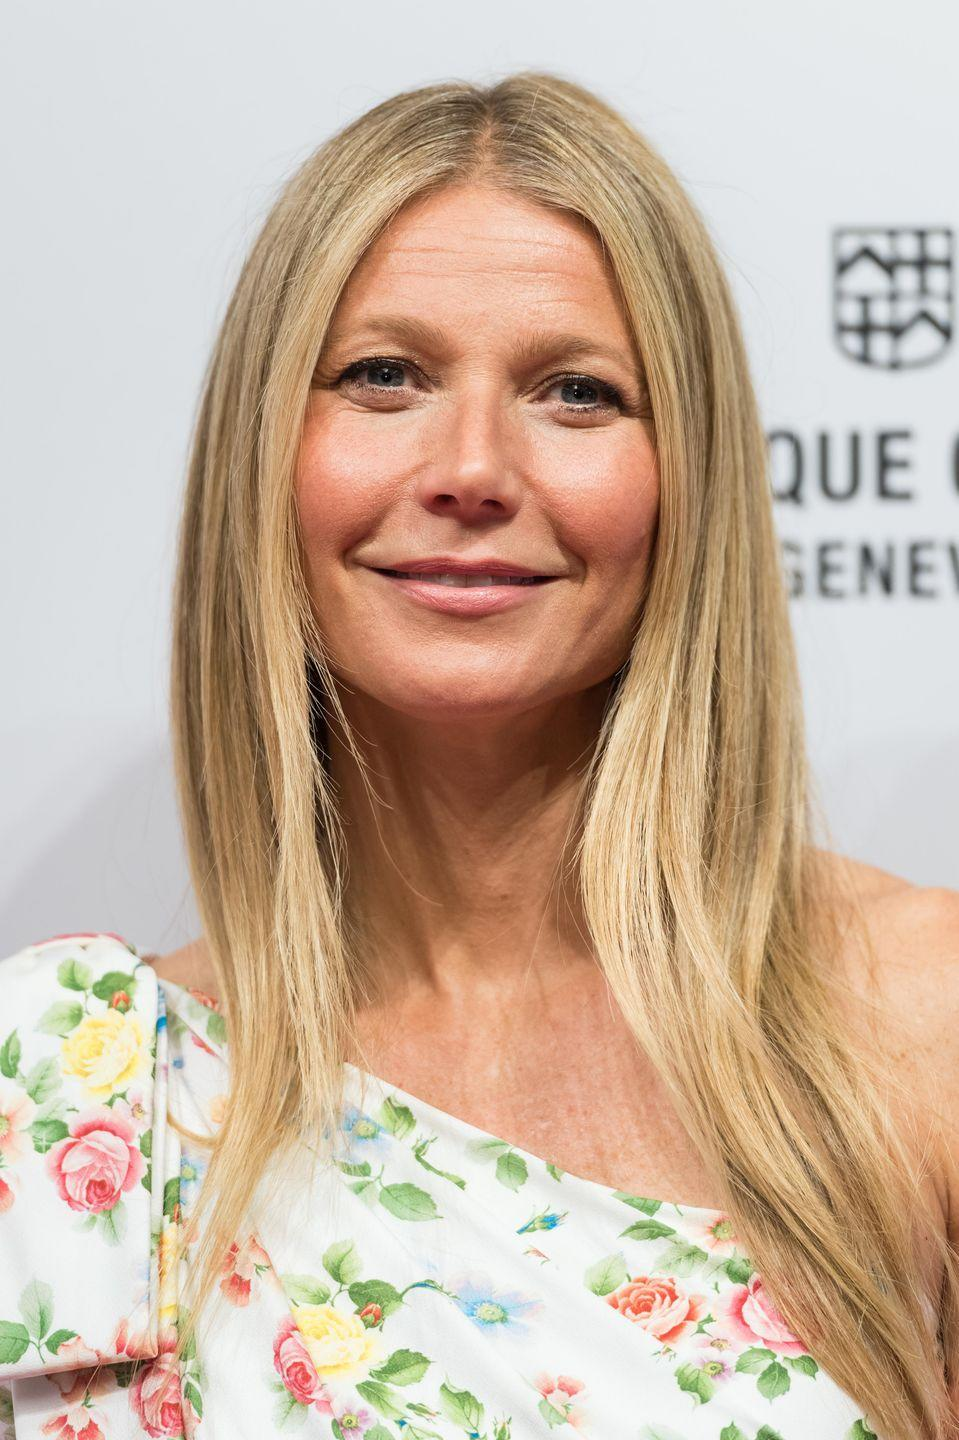 "<p>Health guru Gwyneth Paltrow told <em>Harper's Bazaar</em> that she's tried everything when it comes to skincare, including Botox. ""I'll try anything. Except I won't do Botox again, because I looked crazy. I looked like Joan Rivers!"" Gwyneth <a href=""https://www.huffpost.com/entry/gwyneth-paltrow-botox-crazy_n_3061576"" data-ylk=""slk:said in 2013"" class=""link rapid-noclick-resp"">said in 2013</a>.</p>"